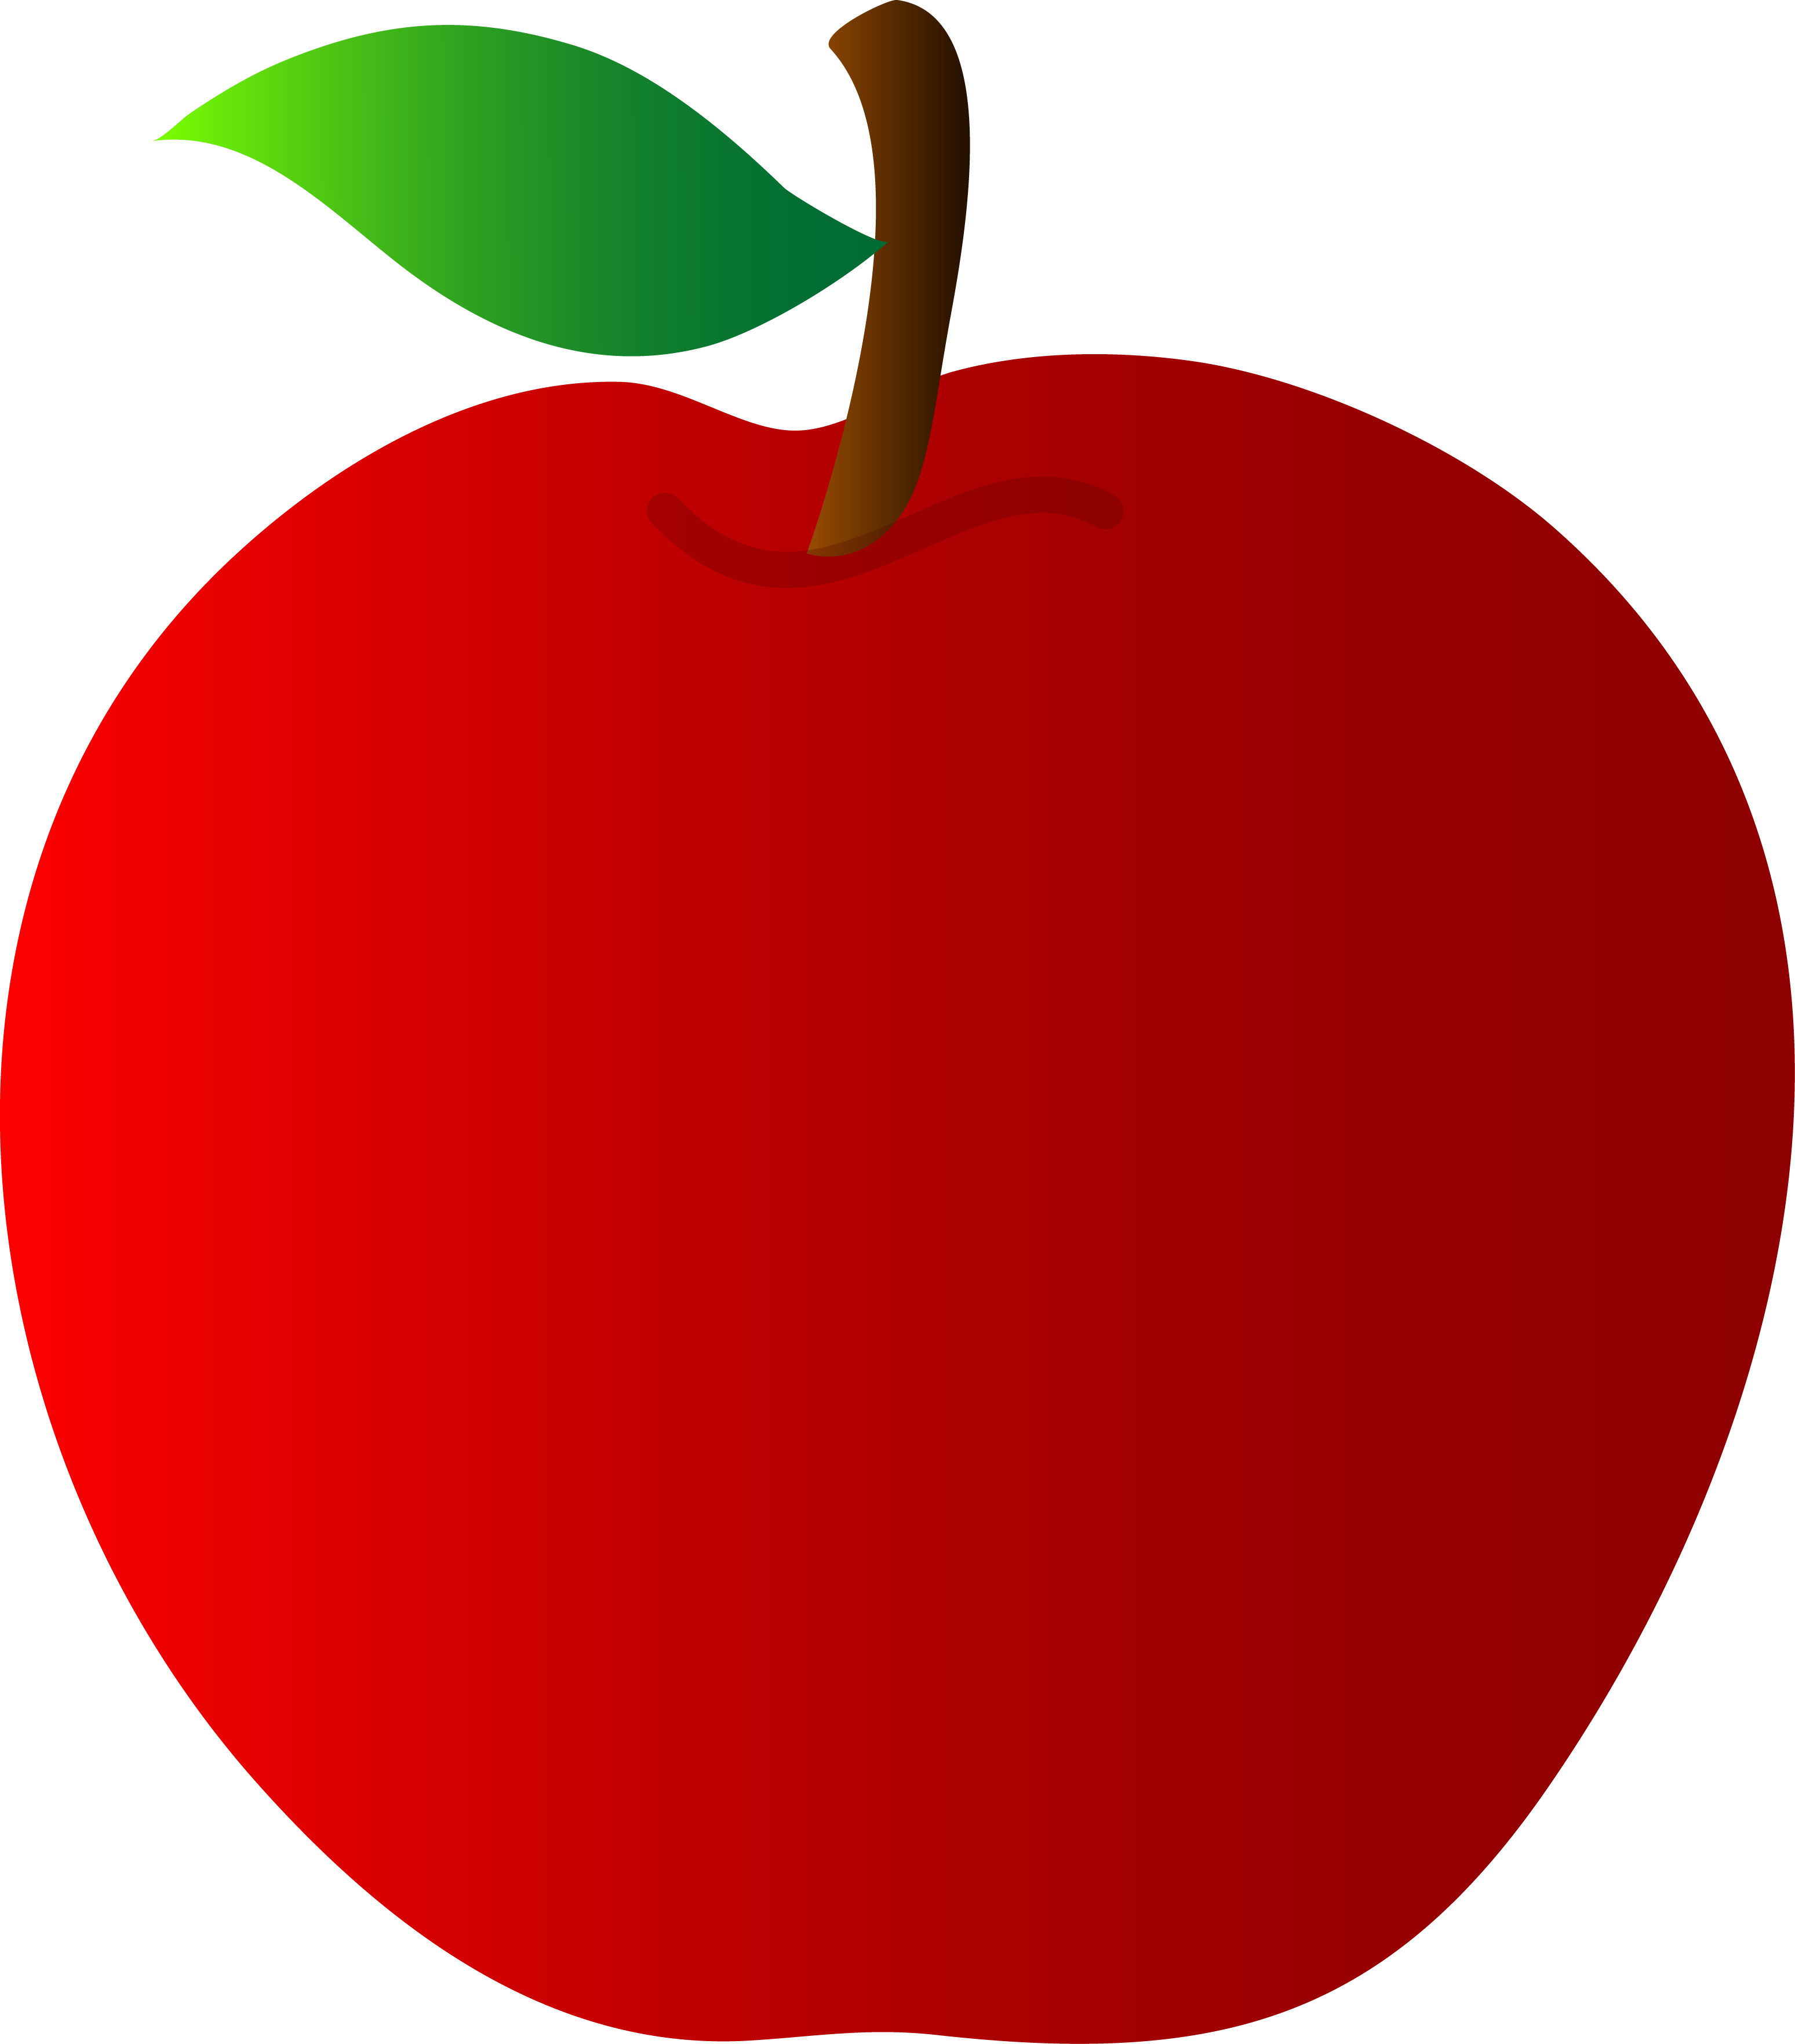 apple_red_1_clipart.png Apple clip art, Apple vector